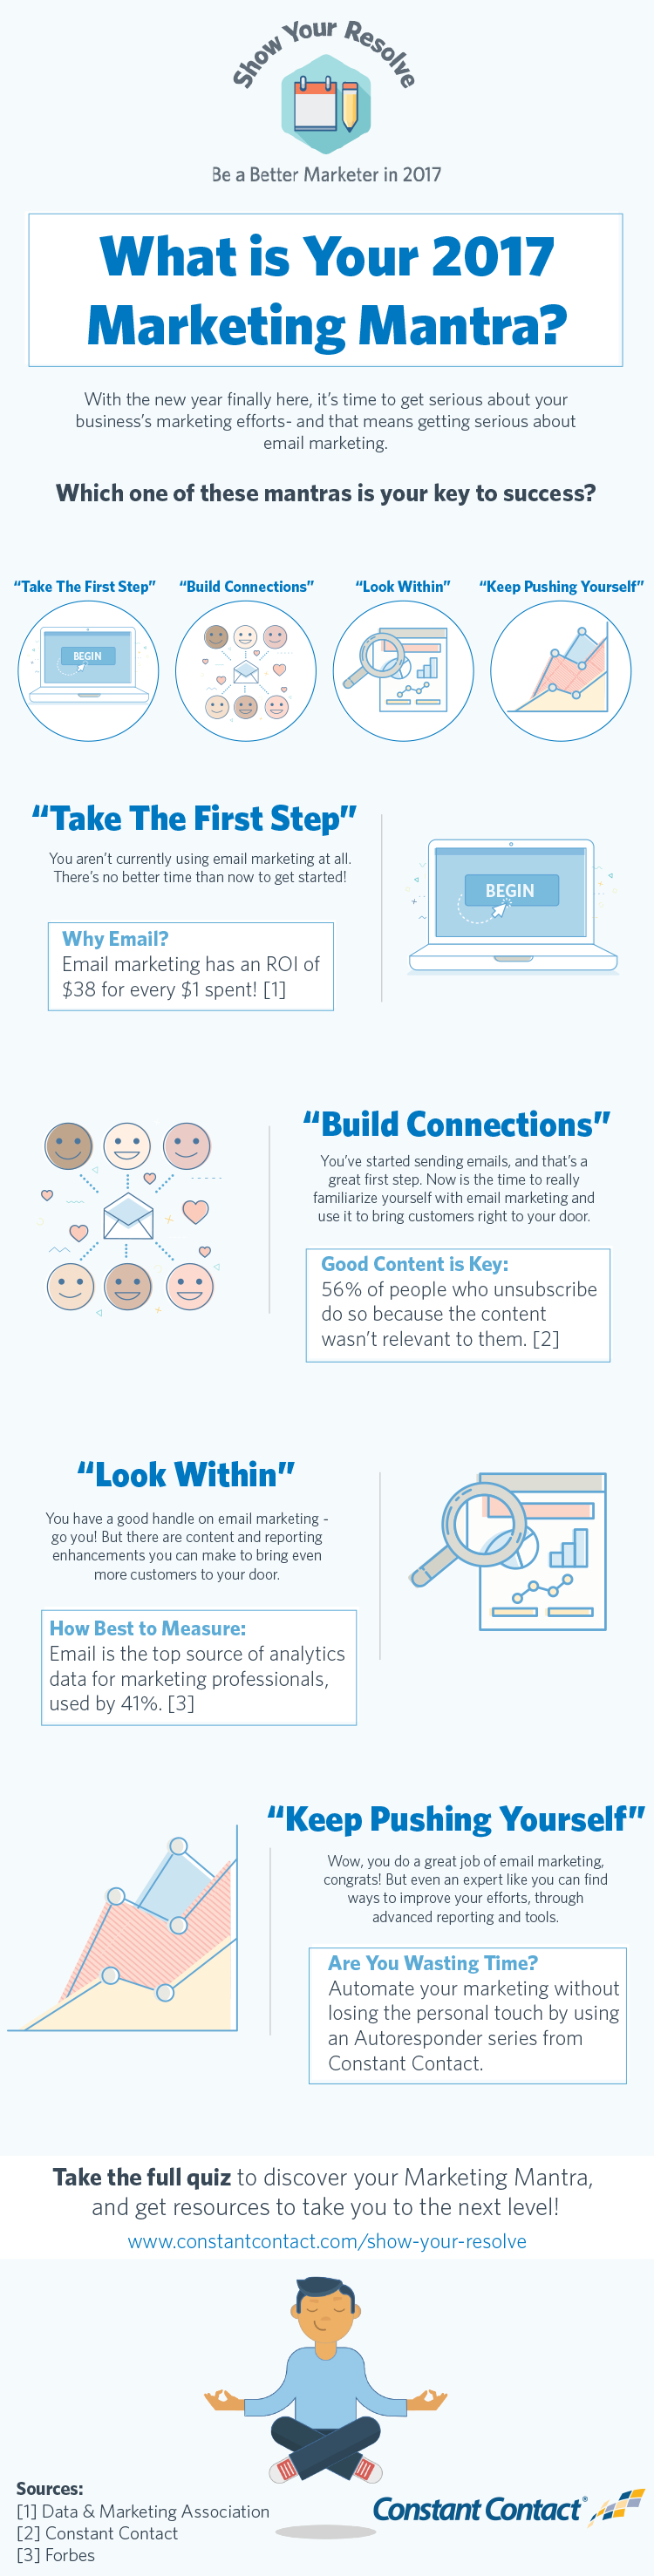 Marketing mantra infographic